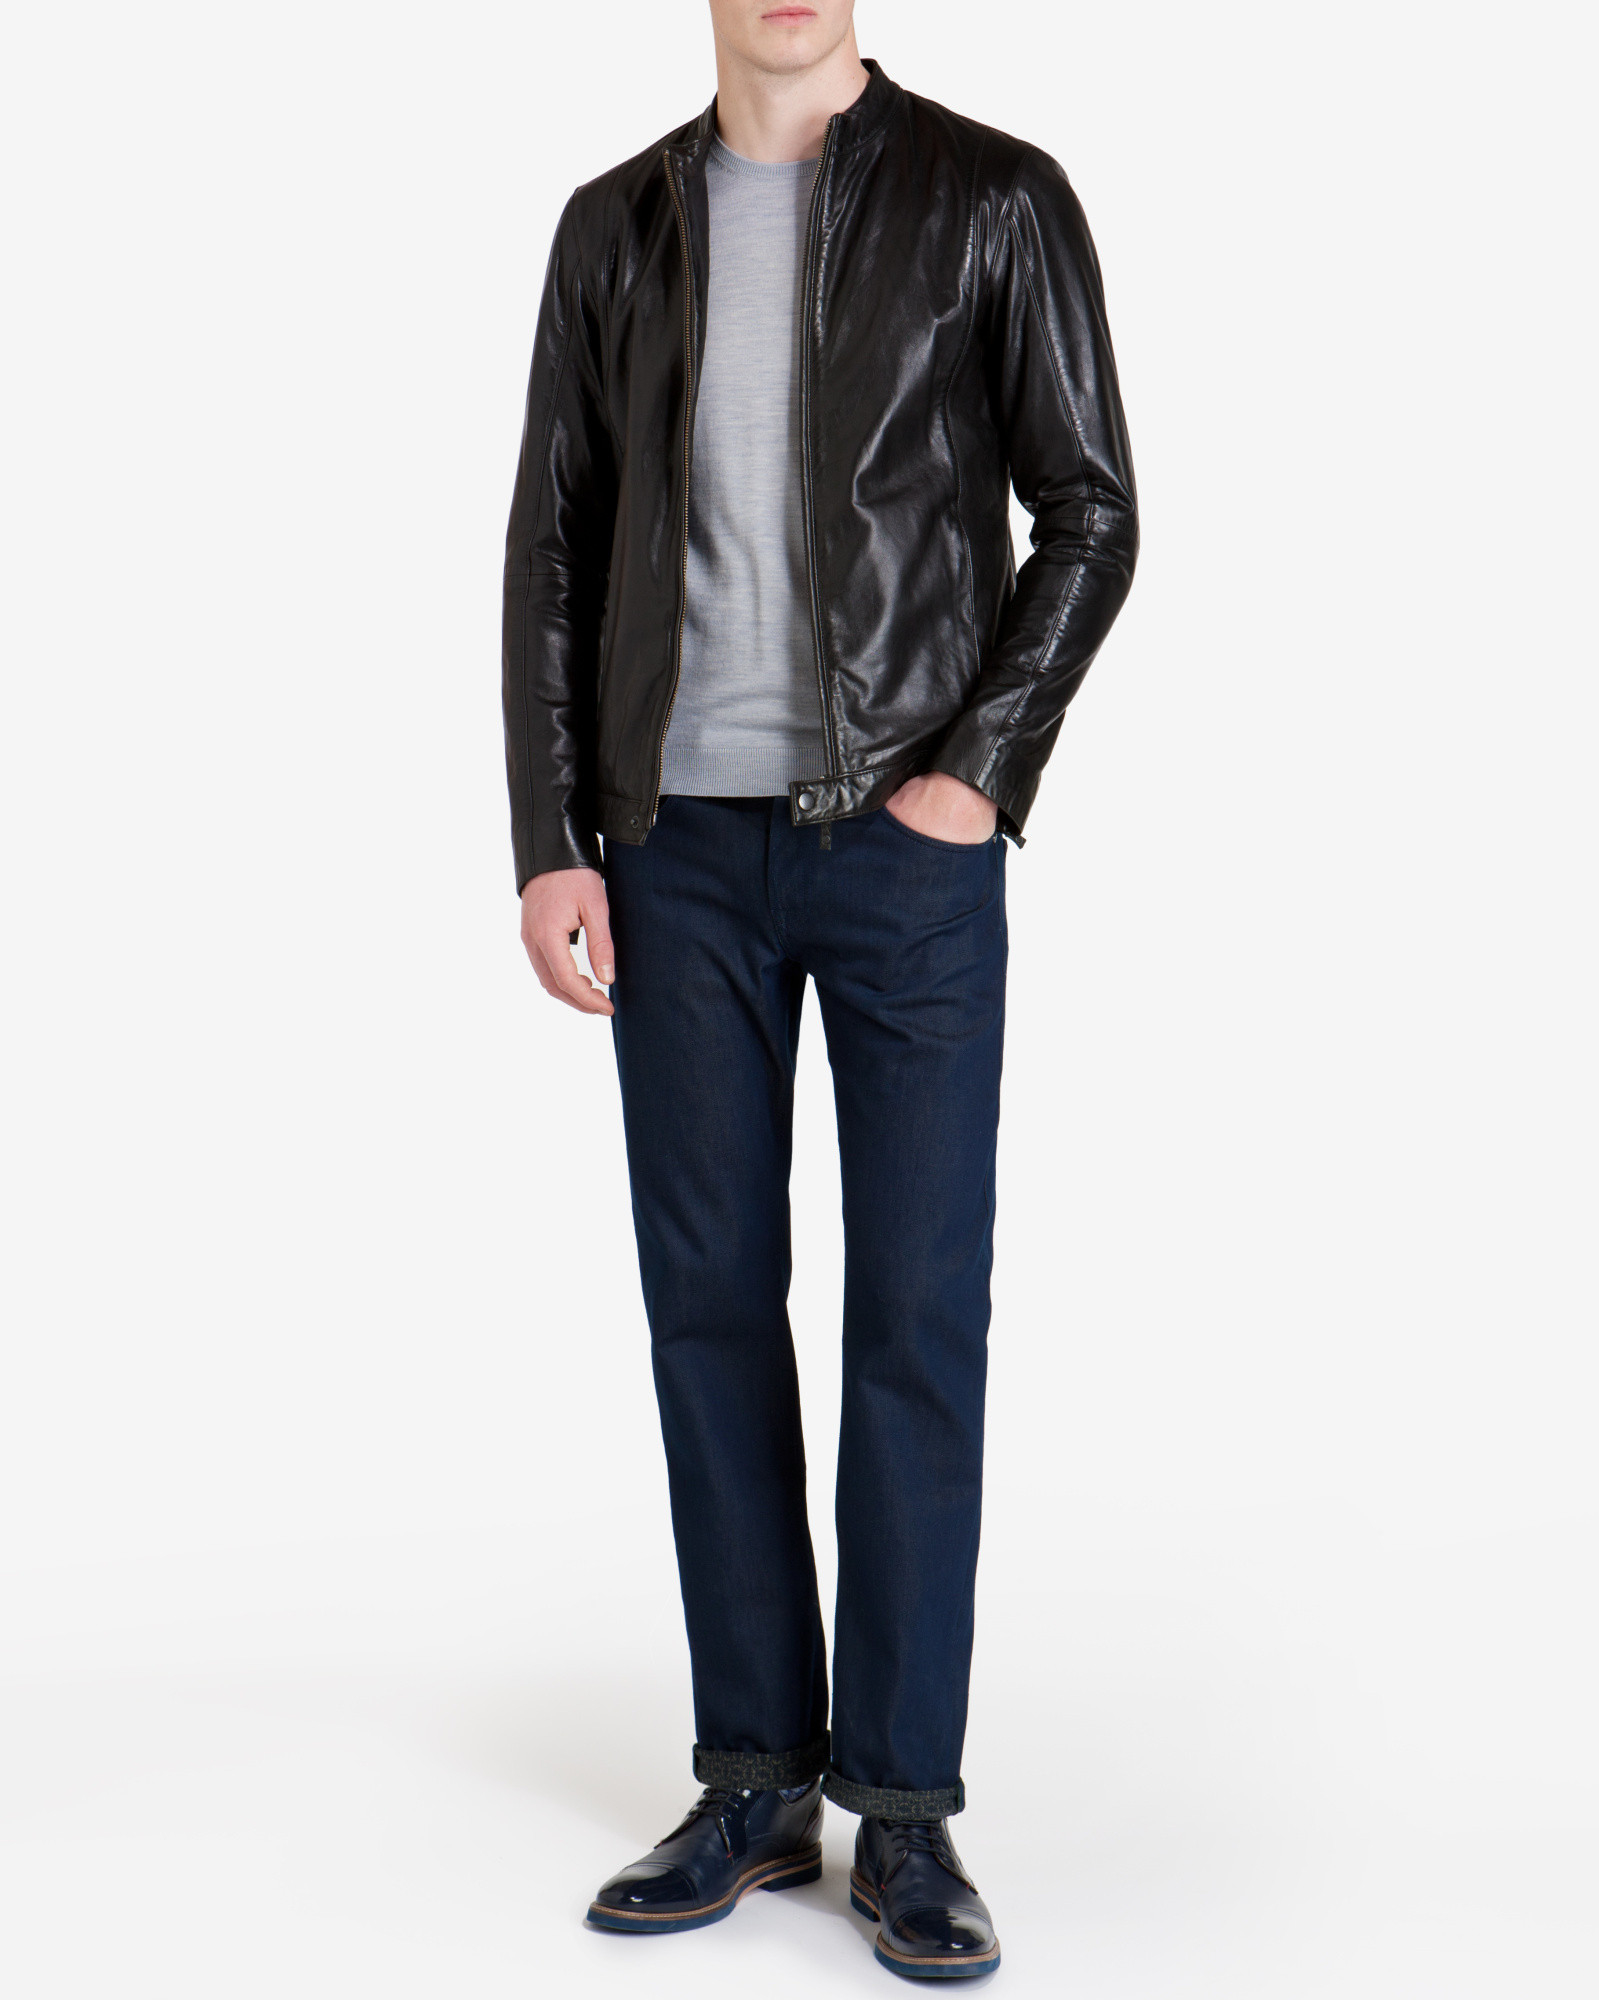 86c93d8d398068 Lyst - Ted Baker Kennit Stab Stitch Front Leather Jacket in Black ...